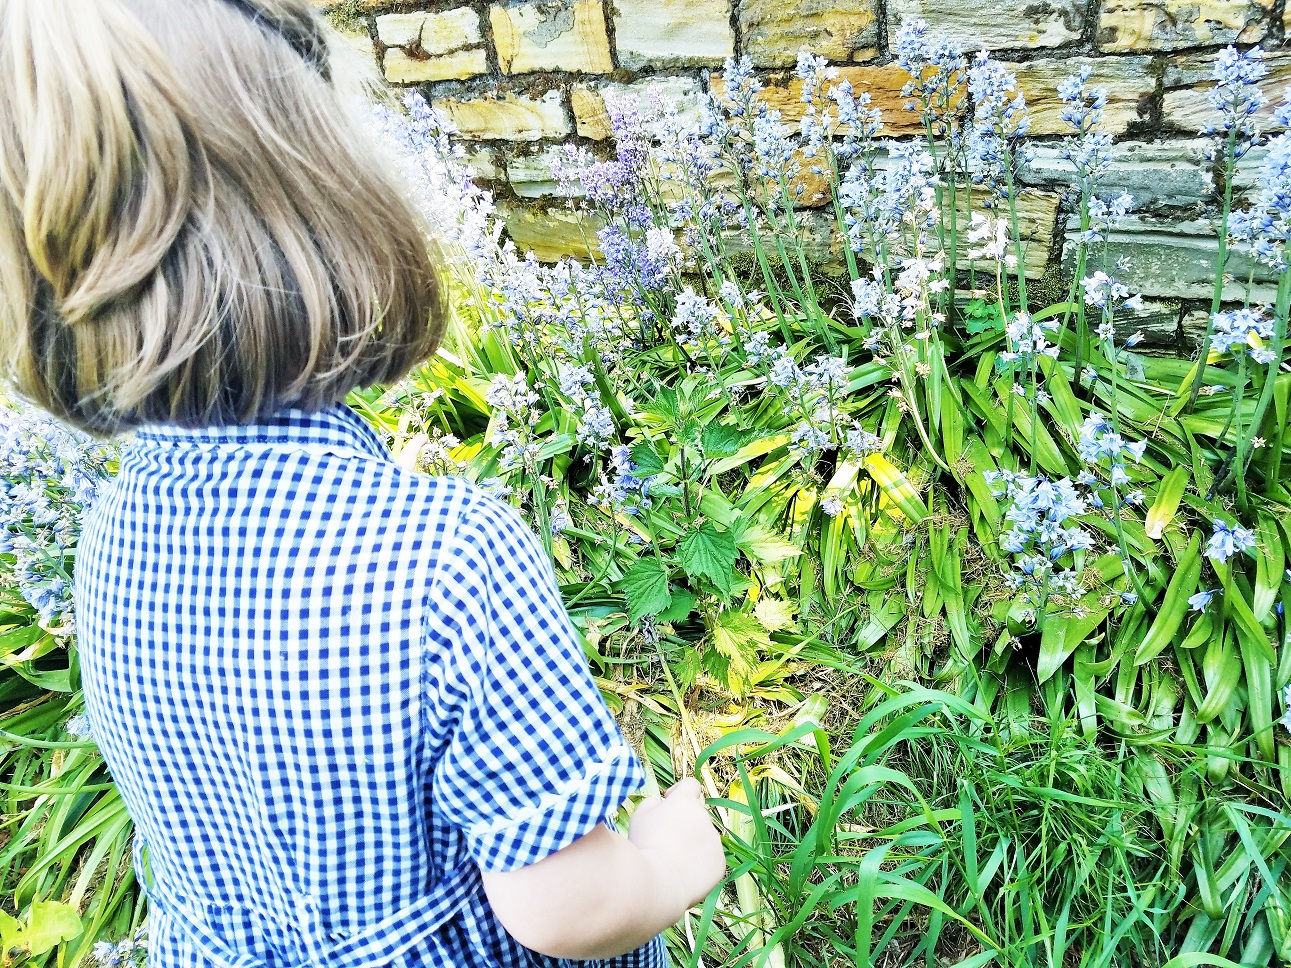 The art of listening is so important for parents - child in blue dress with some blue flowers bluebells